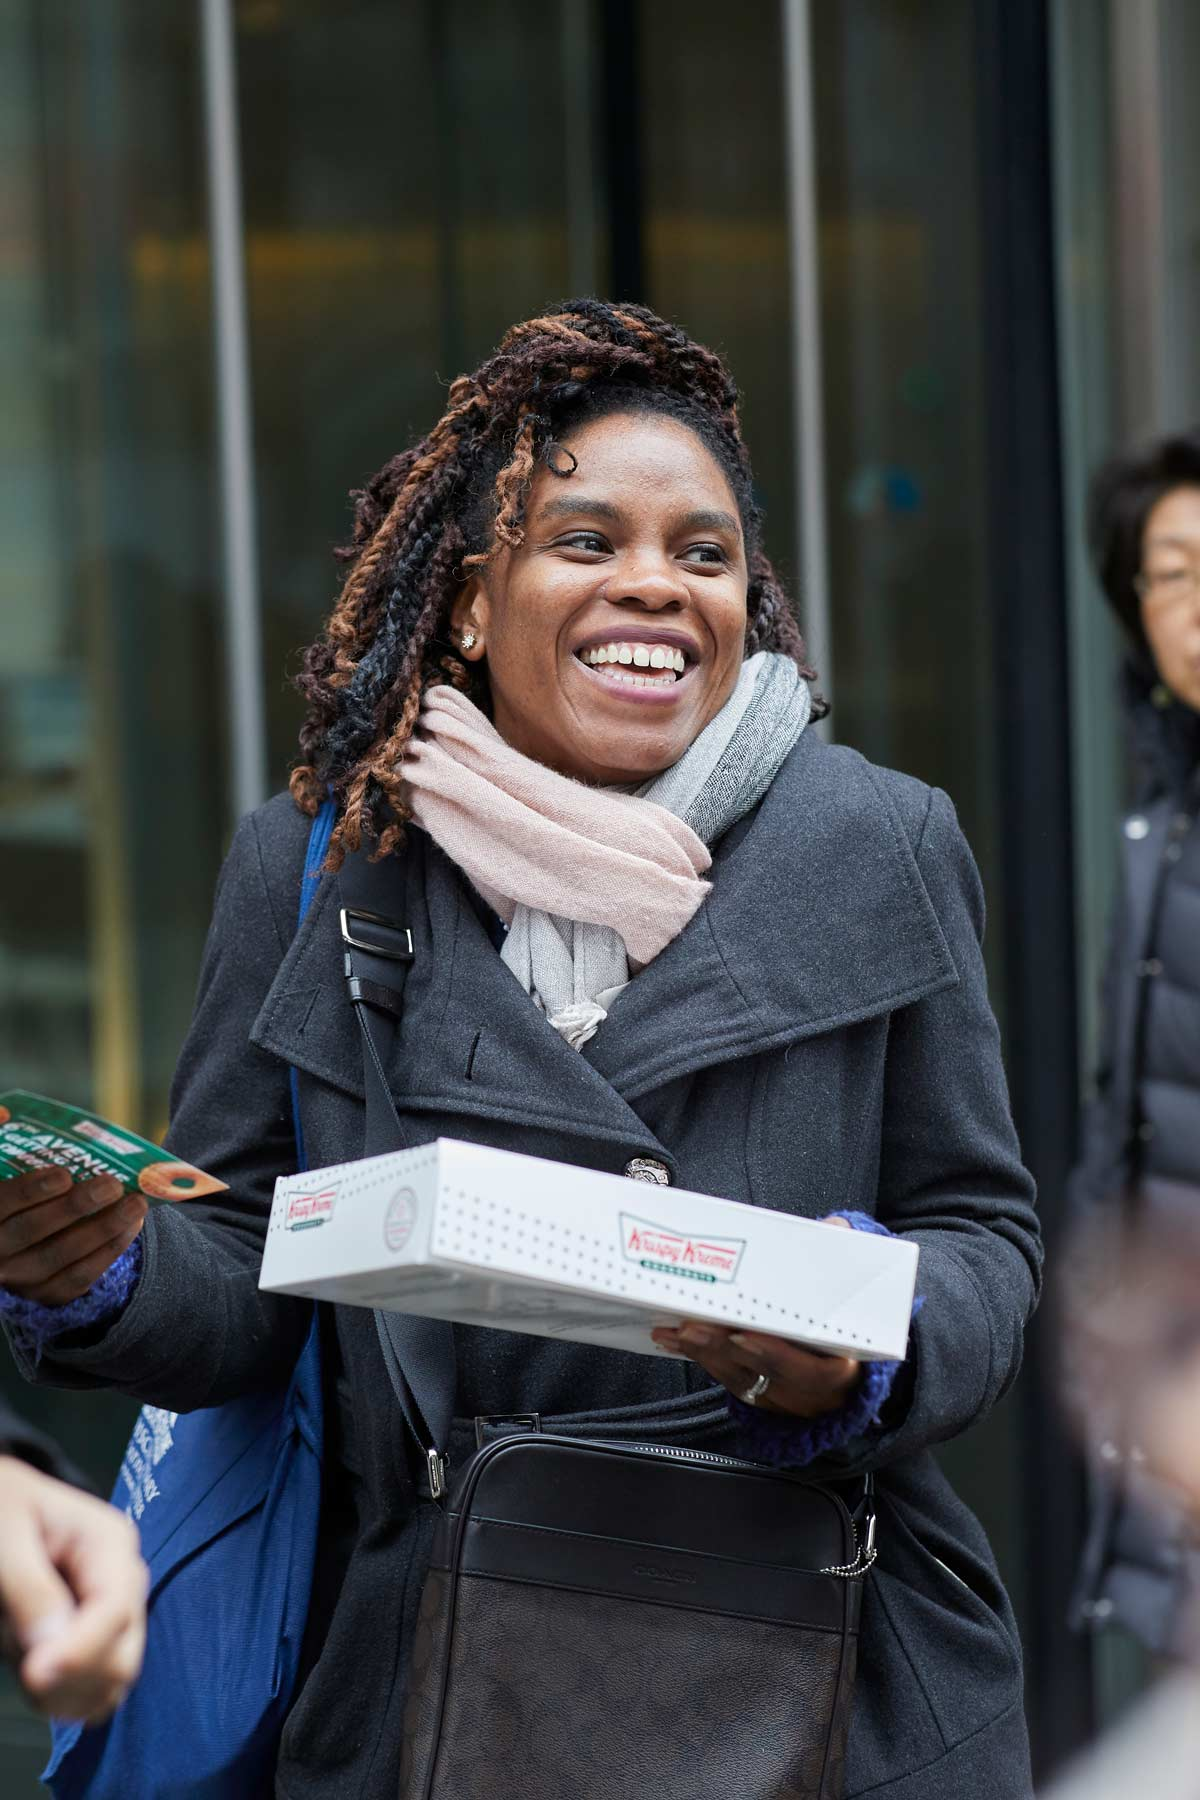 Commercial lifestyle photography of a woman carrying a box of Krispy Kreme doughnuts on the street